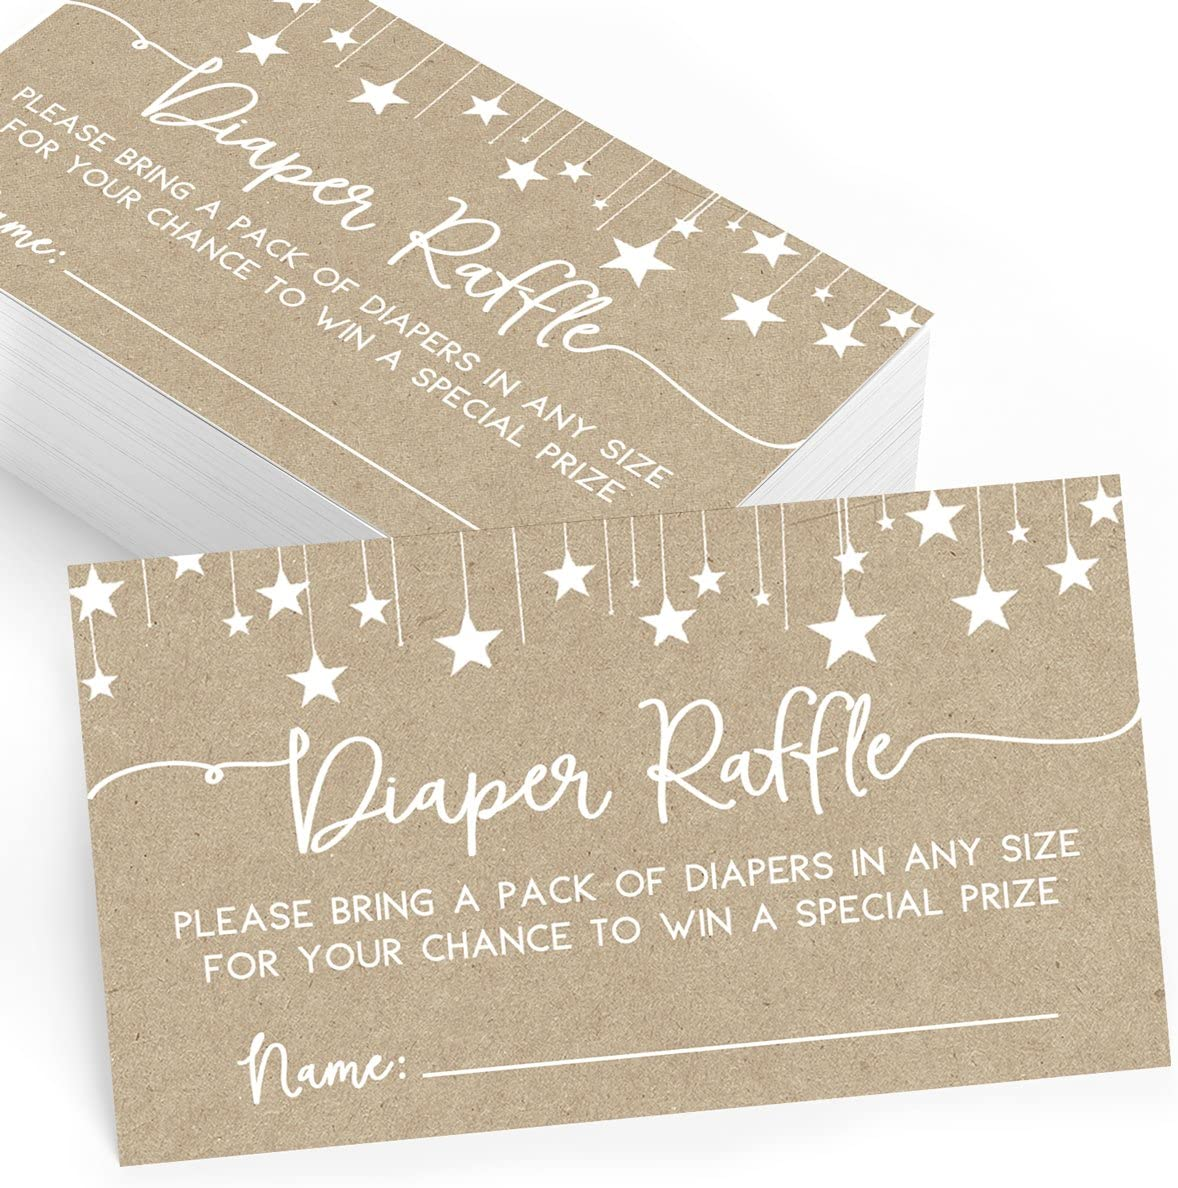 Diaper Raffle Cards for Baby Shower, Set of 25, Raffle Tickets and Insert  Cards, Baby Shower Games, Activities, and Ideas